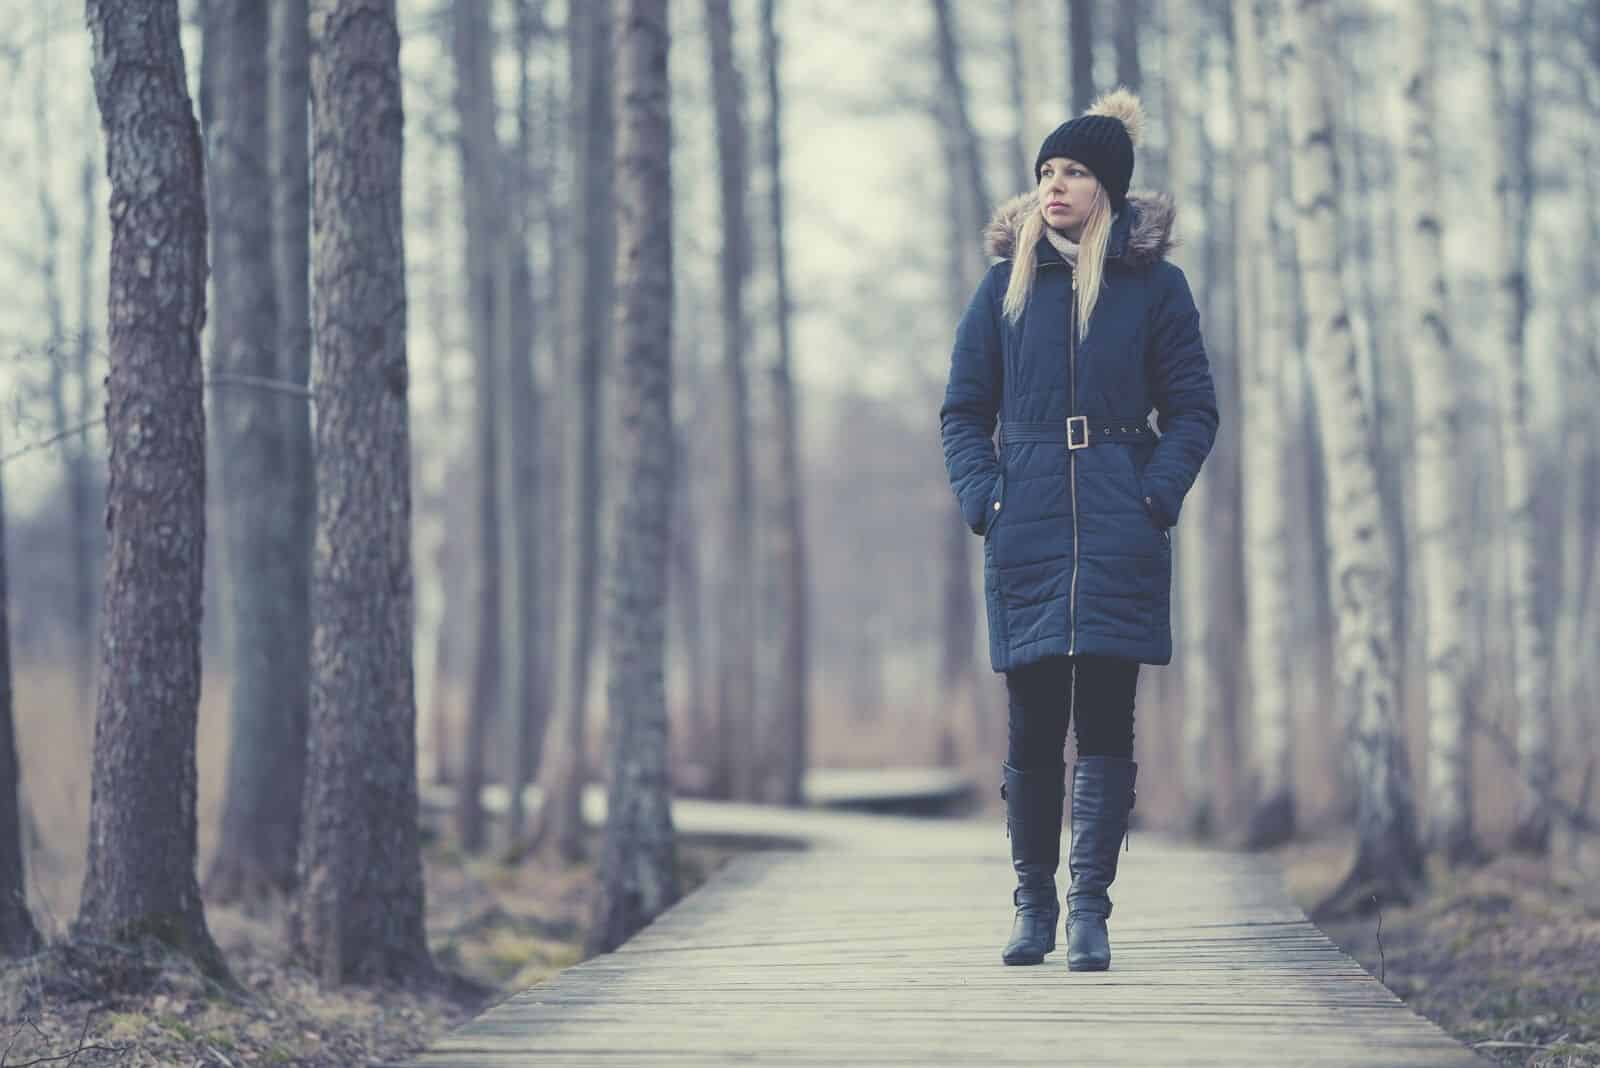 woman in winter clothes walking thru the pathway in the park with tall trees